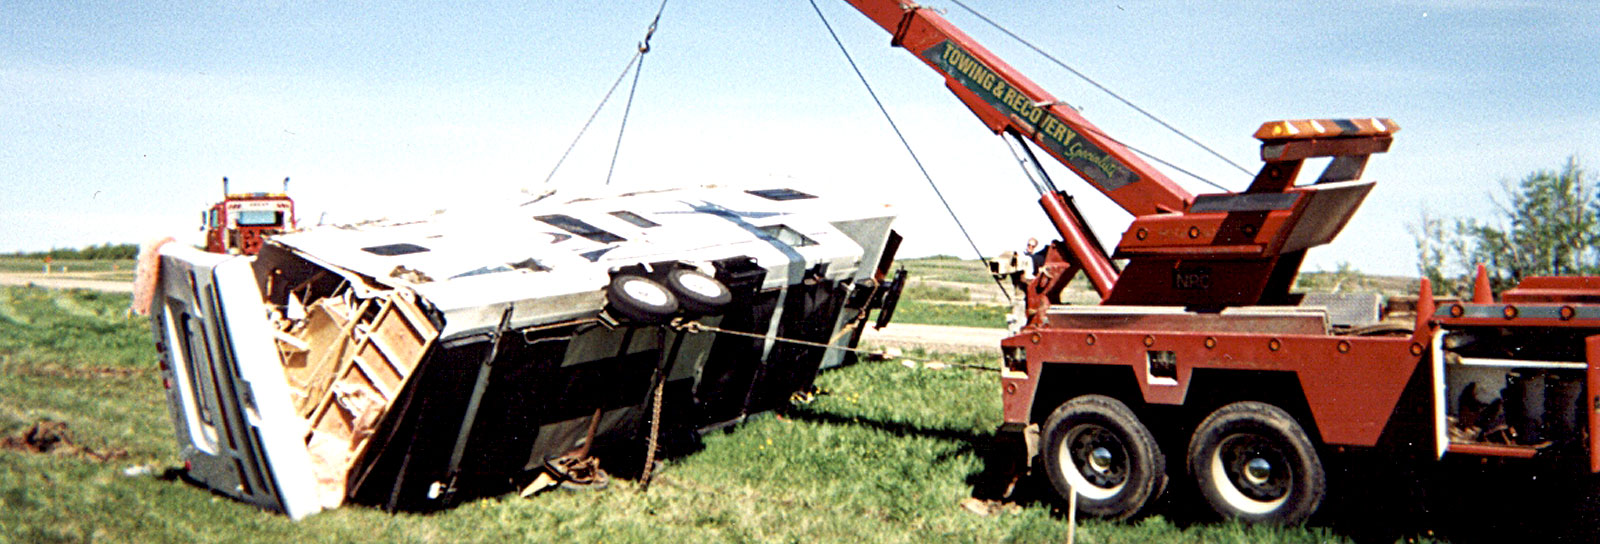 Action-Towing-Recovery